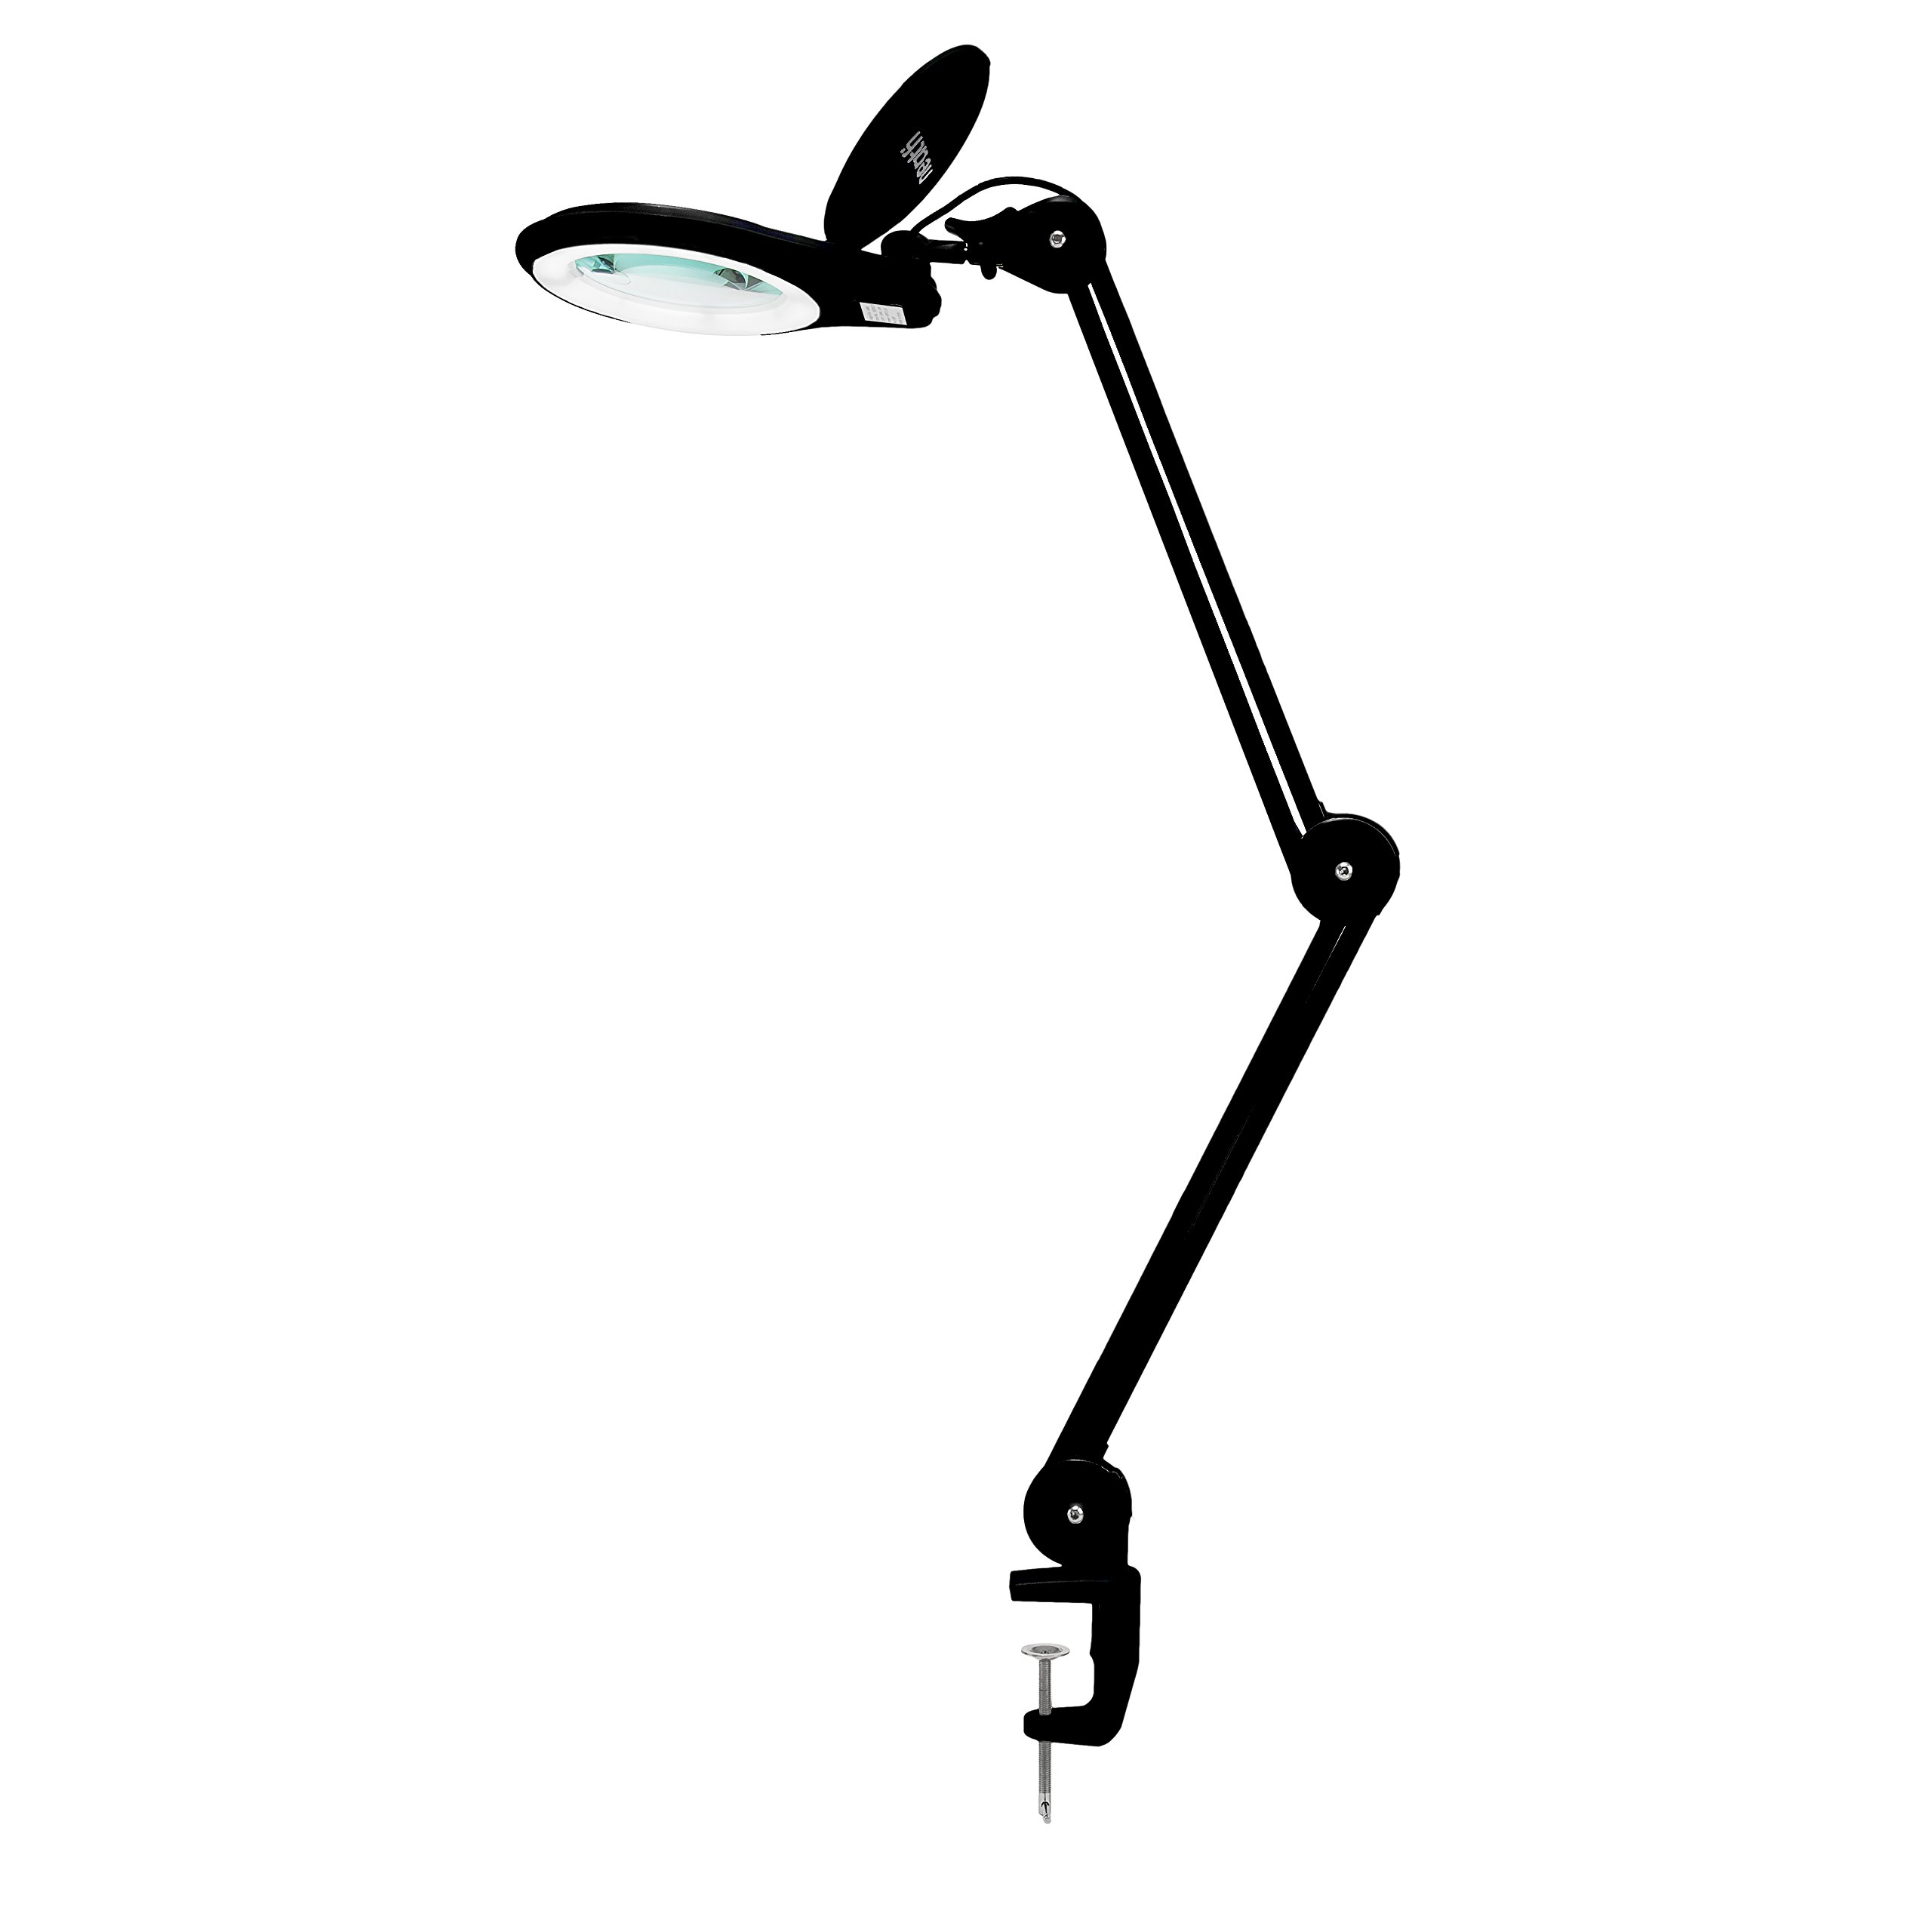 Neatfi 1,200 Lumens Super LED Magnifying Lamp with Clamp   Dimmable   Microfiber Cleaning Cloth Included   60PCS SMD LED   5 Diopter   5'' Diameter Lens   Adjustable Swivel Arm Utility Clamp Light